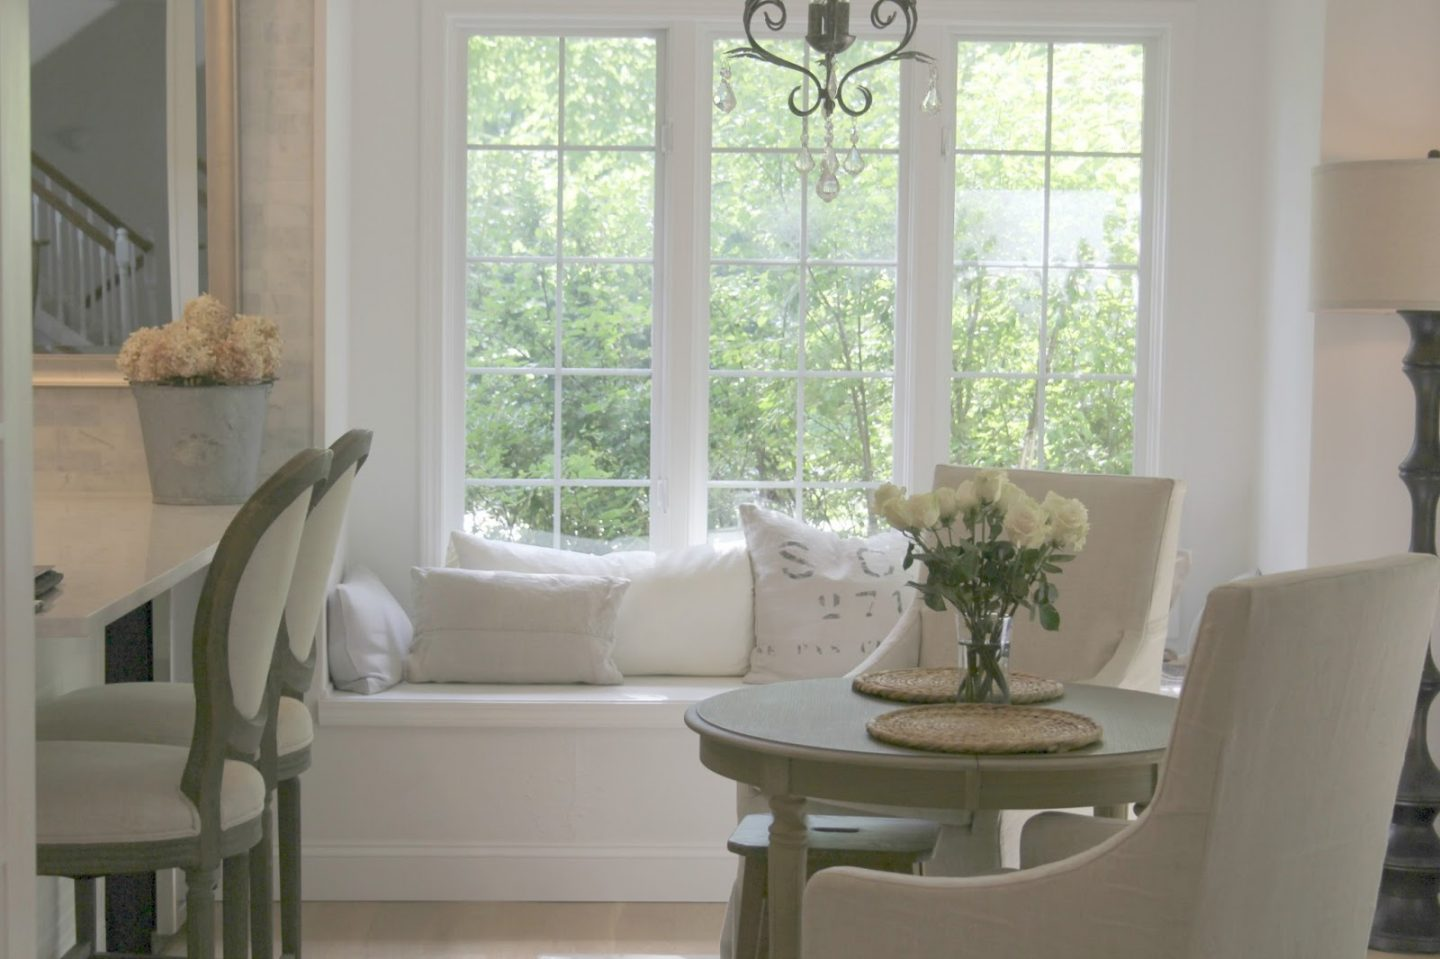 Serene whit kitchen with windowseat. Countertop is Viatera quartz in Minuet. Paint color is Benjamin Moore WHITE. Belgian linen French bar stools and slipcovered arm chairs with round wood dining table. #hellolovelystudio #kitchendecor #frenchcountry #serene #belgianlinen #europeancountry #neutral #windowseat #breakfastroom